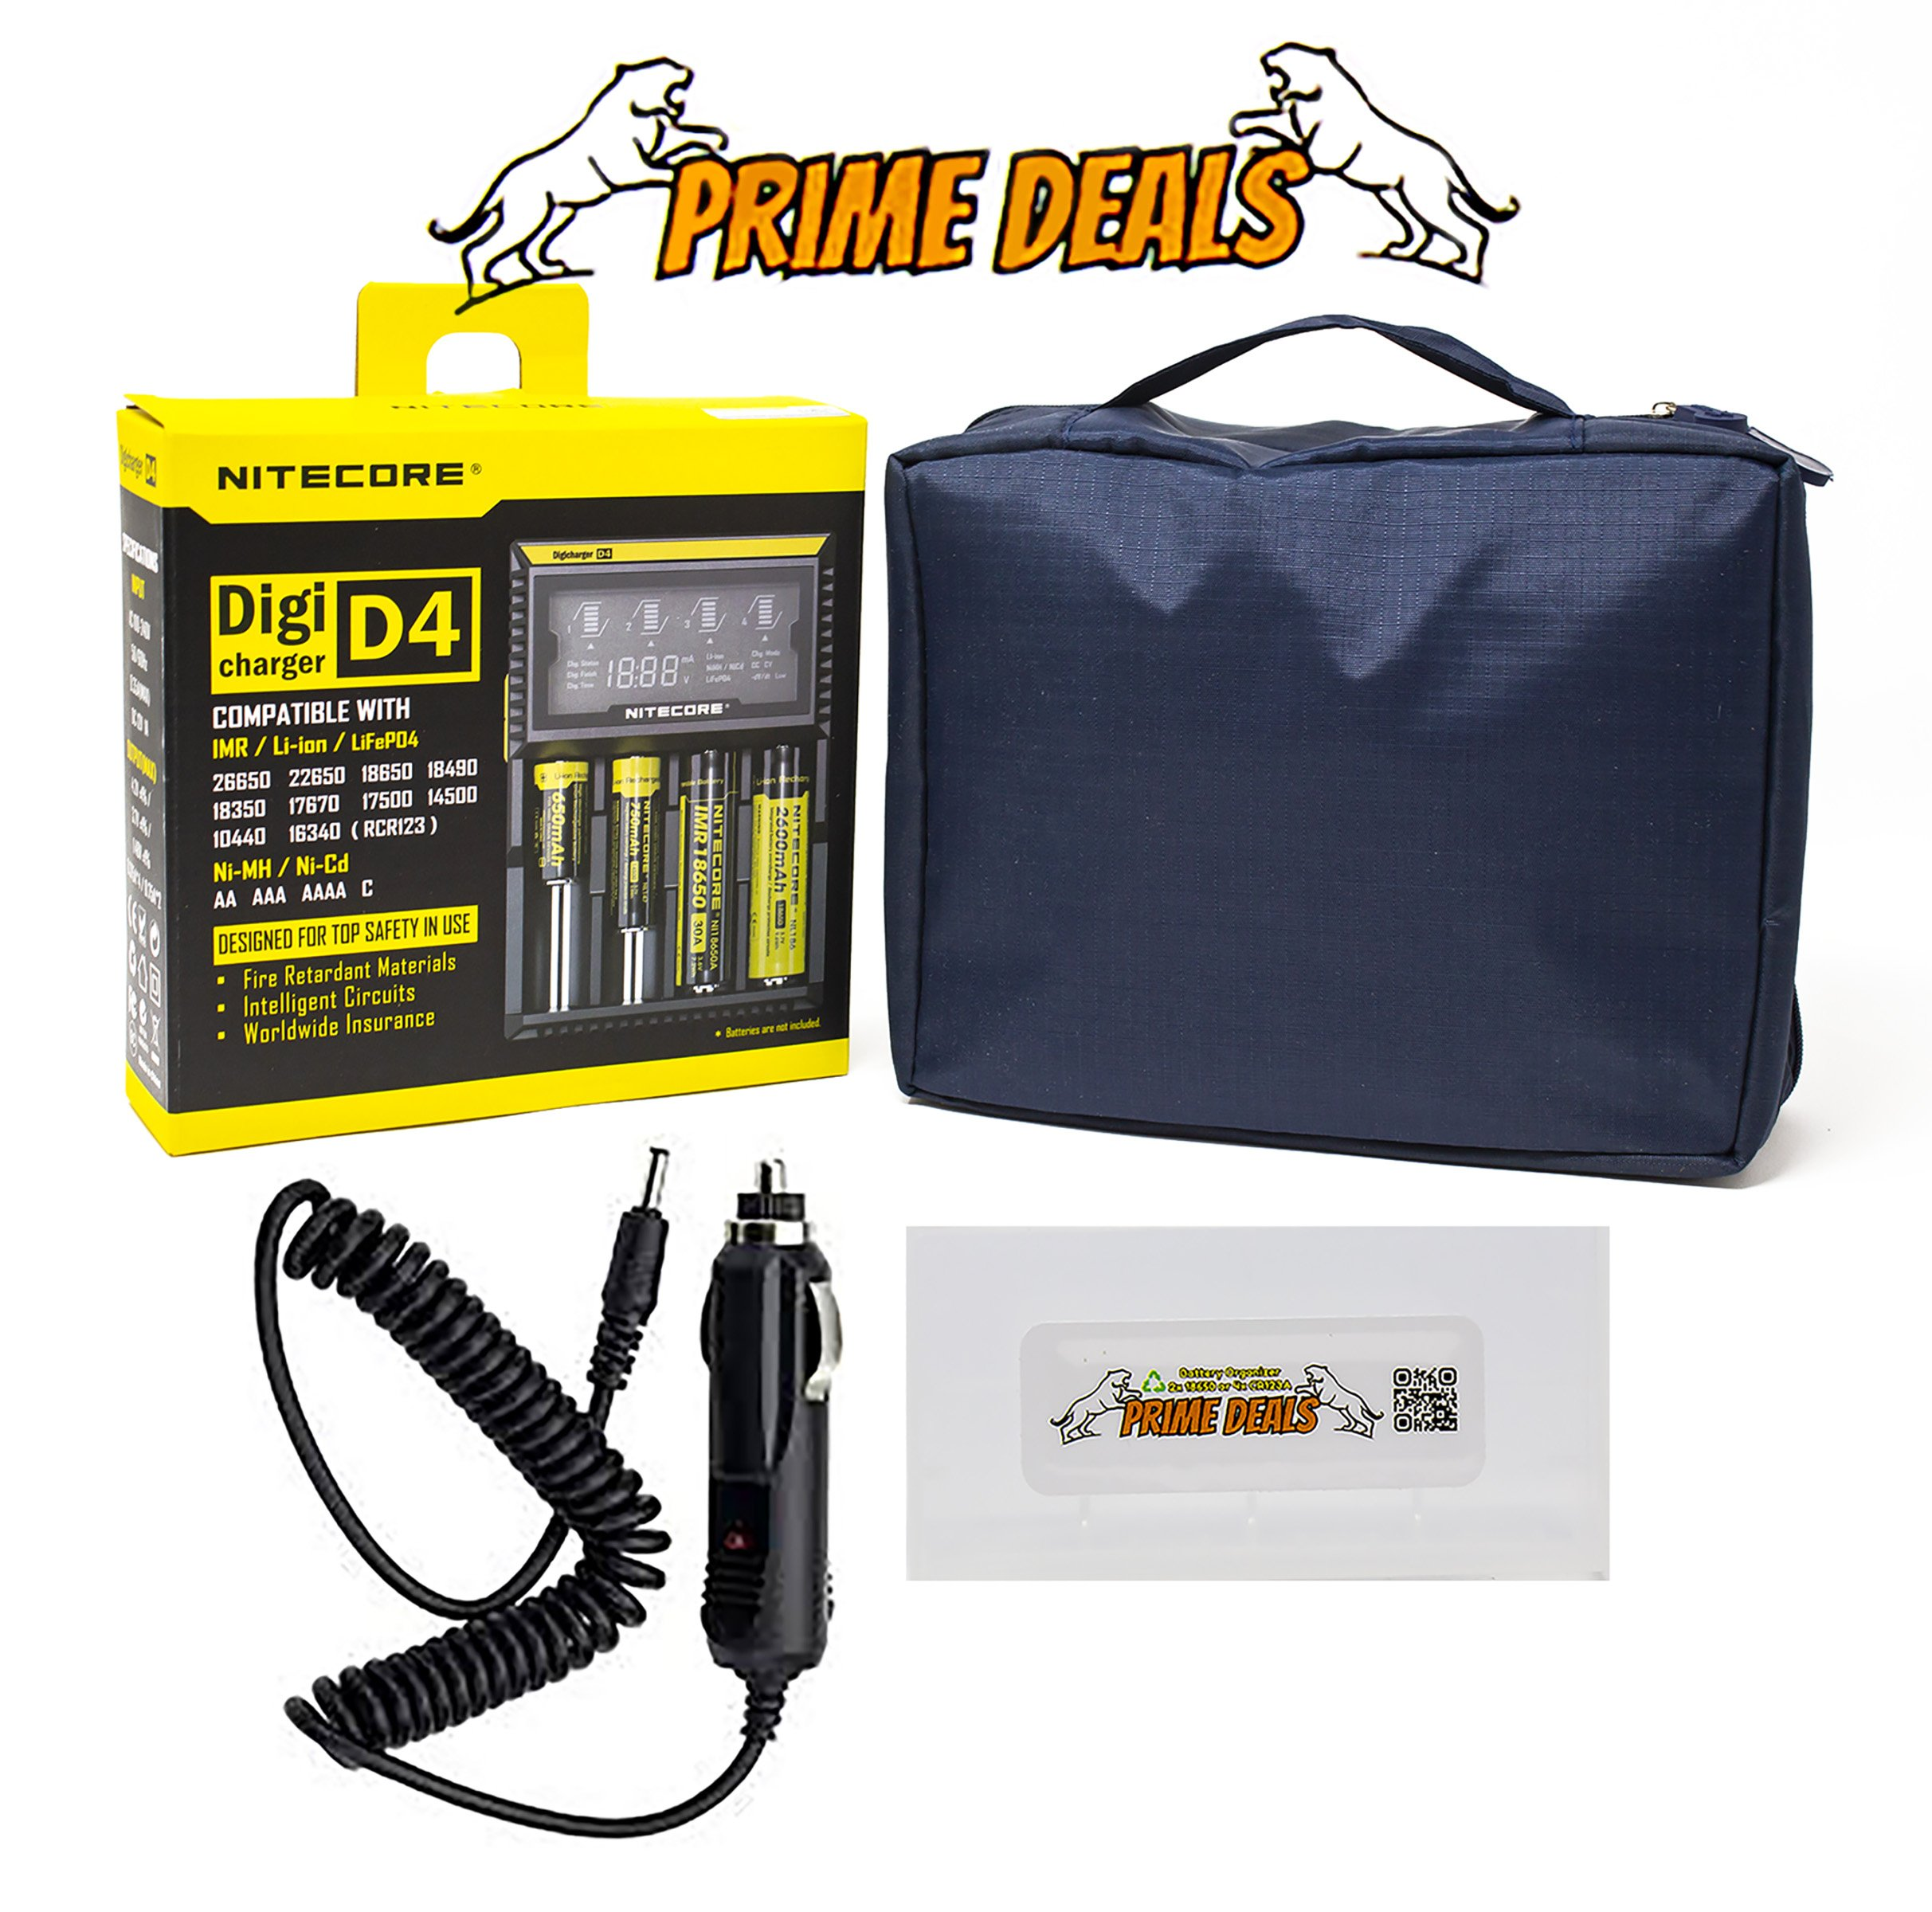 NiteCore D4 charger integrated LCD panel display for Li-Ion Ni-MH Ni-Cd Batteries with PRIMEDEALS Car Adapter and PRIMEDEALS Battery Organizer + BONUS FREE PRIMEDEALS Travel Case by PrimeDeals